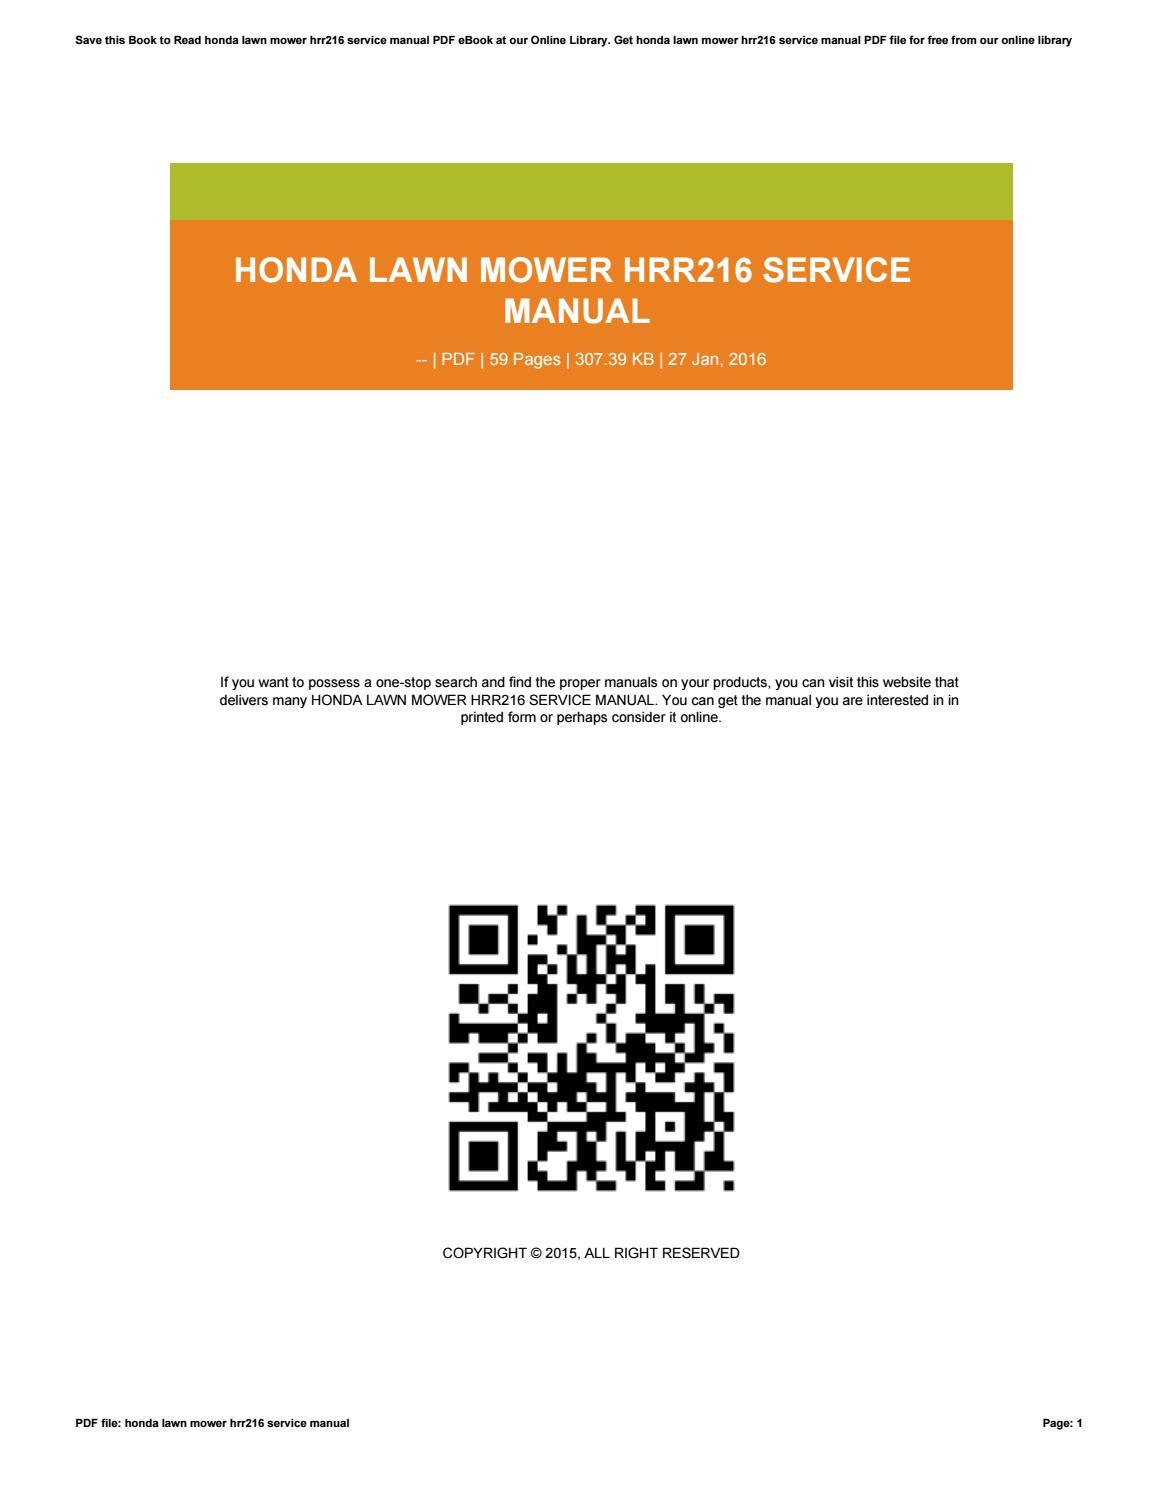 Honda Lawn Mower Hrr216 Service Manual By Vssms393   Issuu